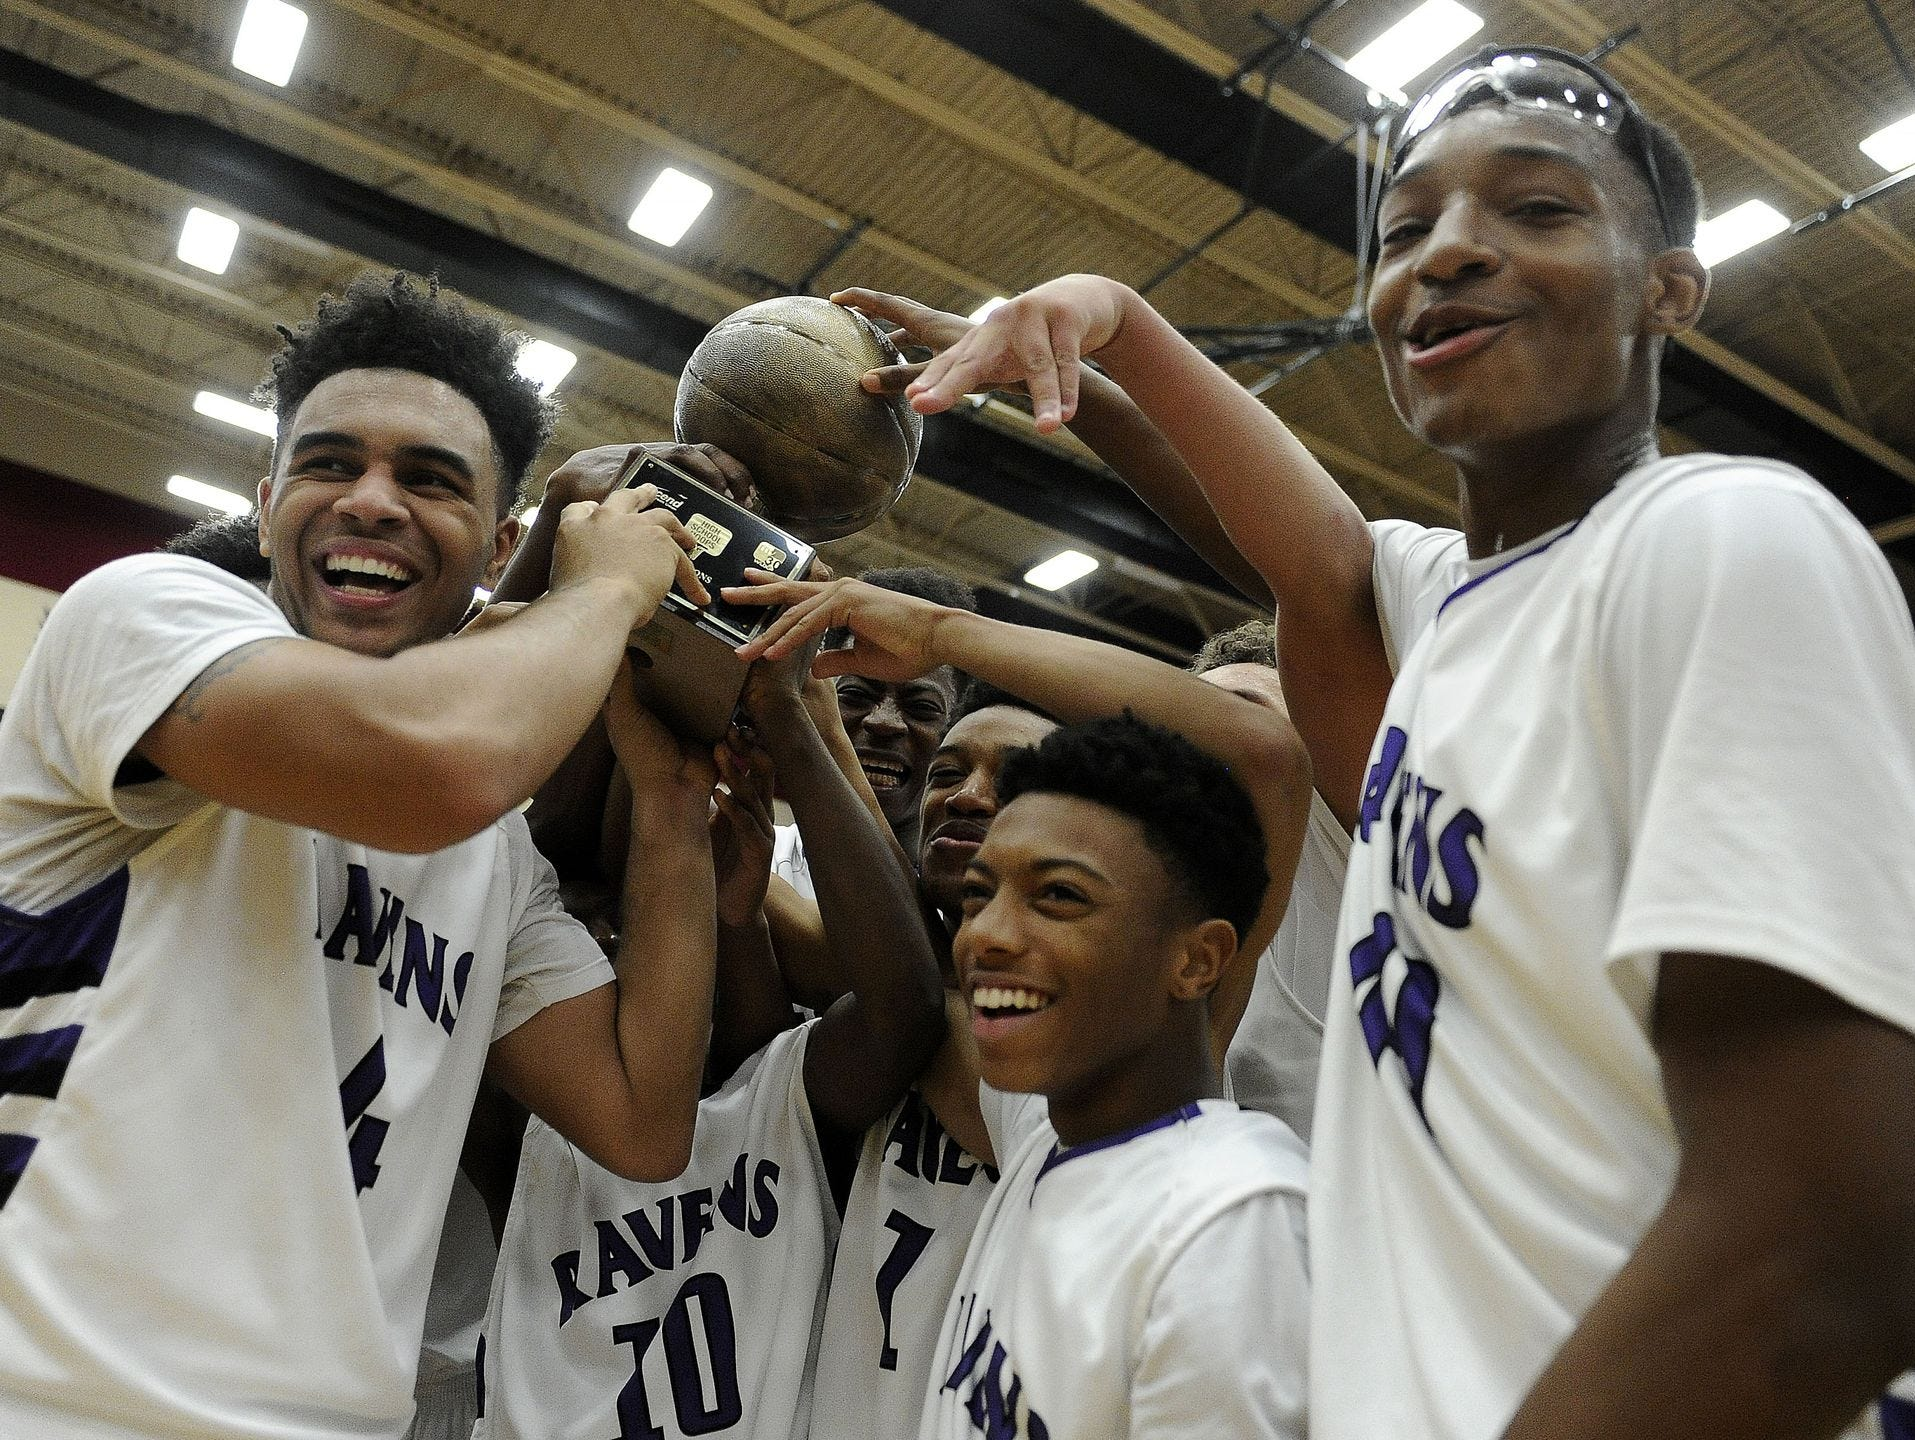 Cane Ridge players celebrate after the team's doubble-overtime win over Hillsboro on Friday.